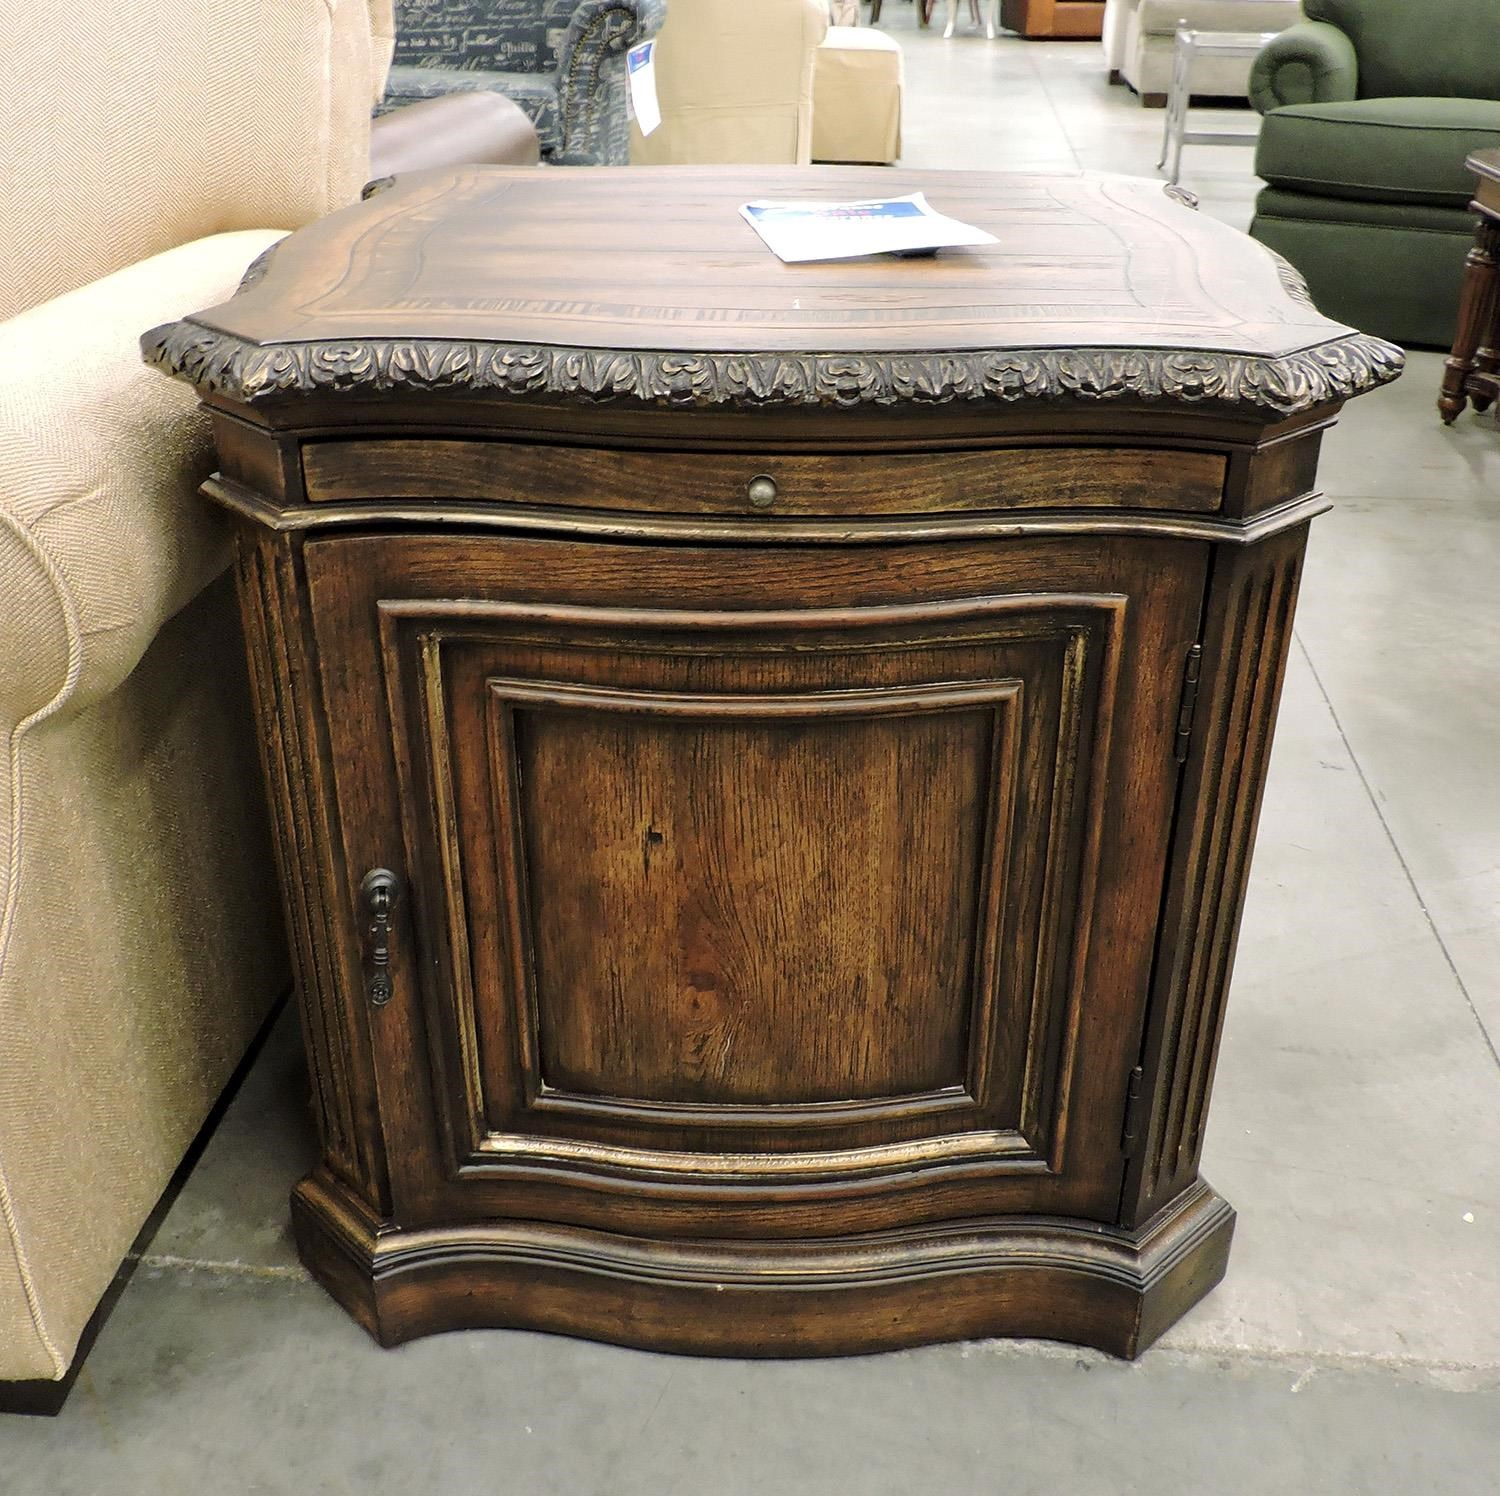 Hooker Furniture Clearance Lamp Table - Item Number: 509180115